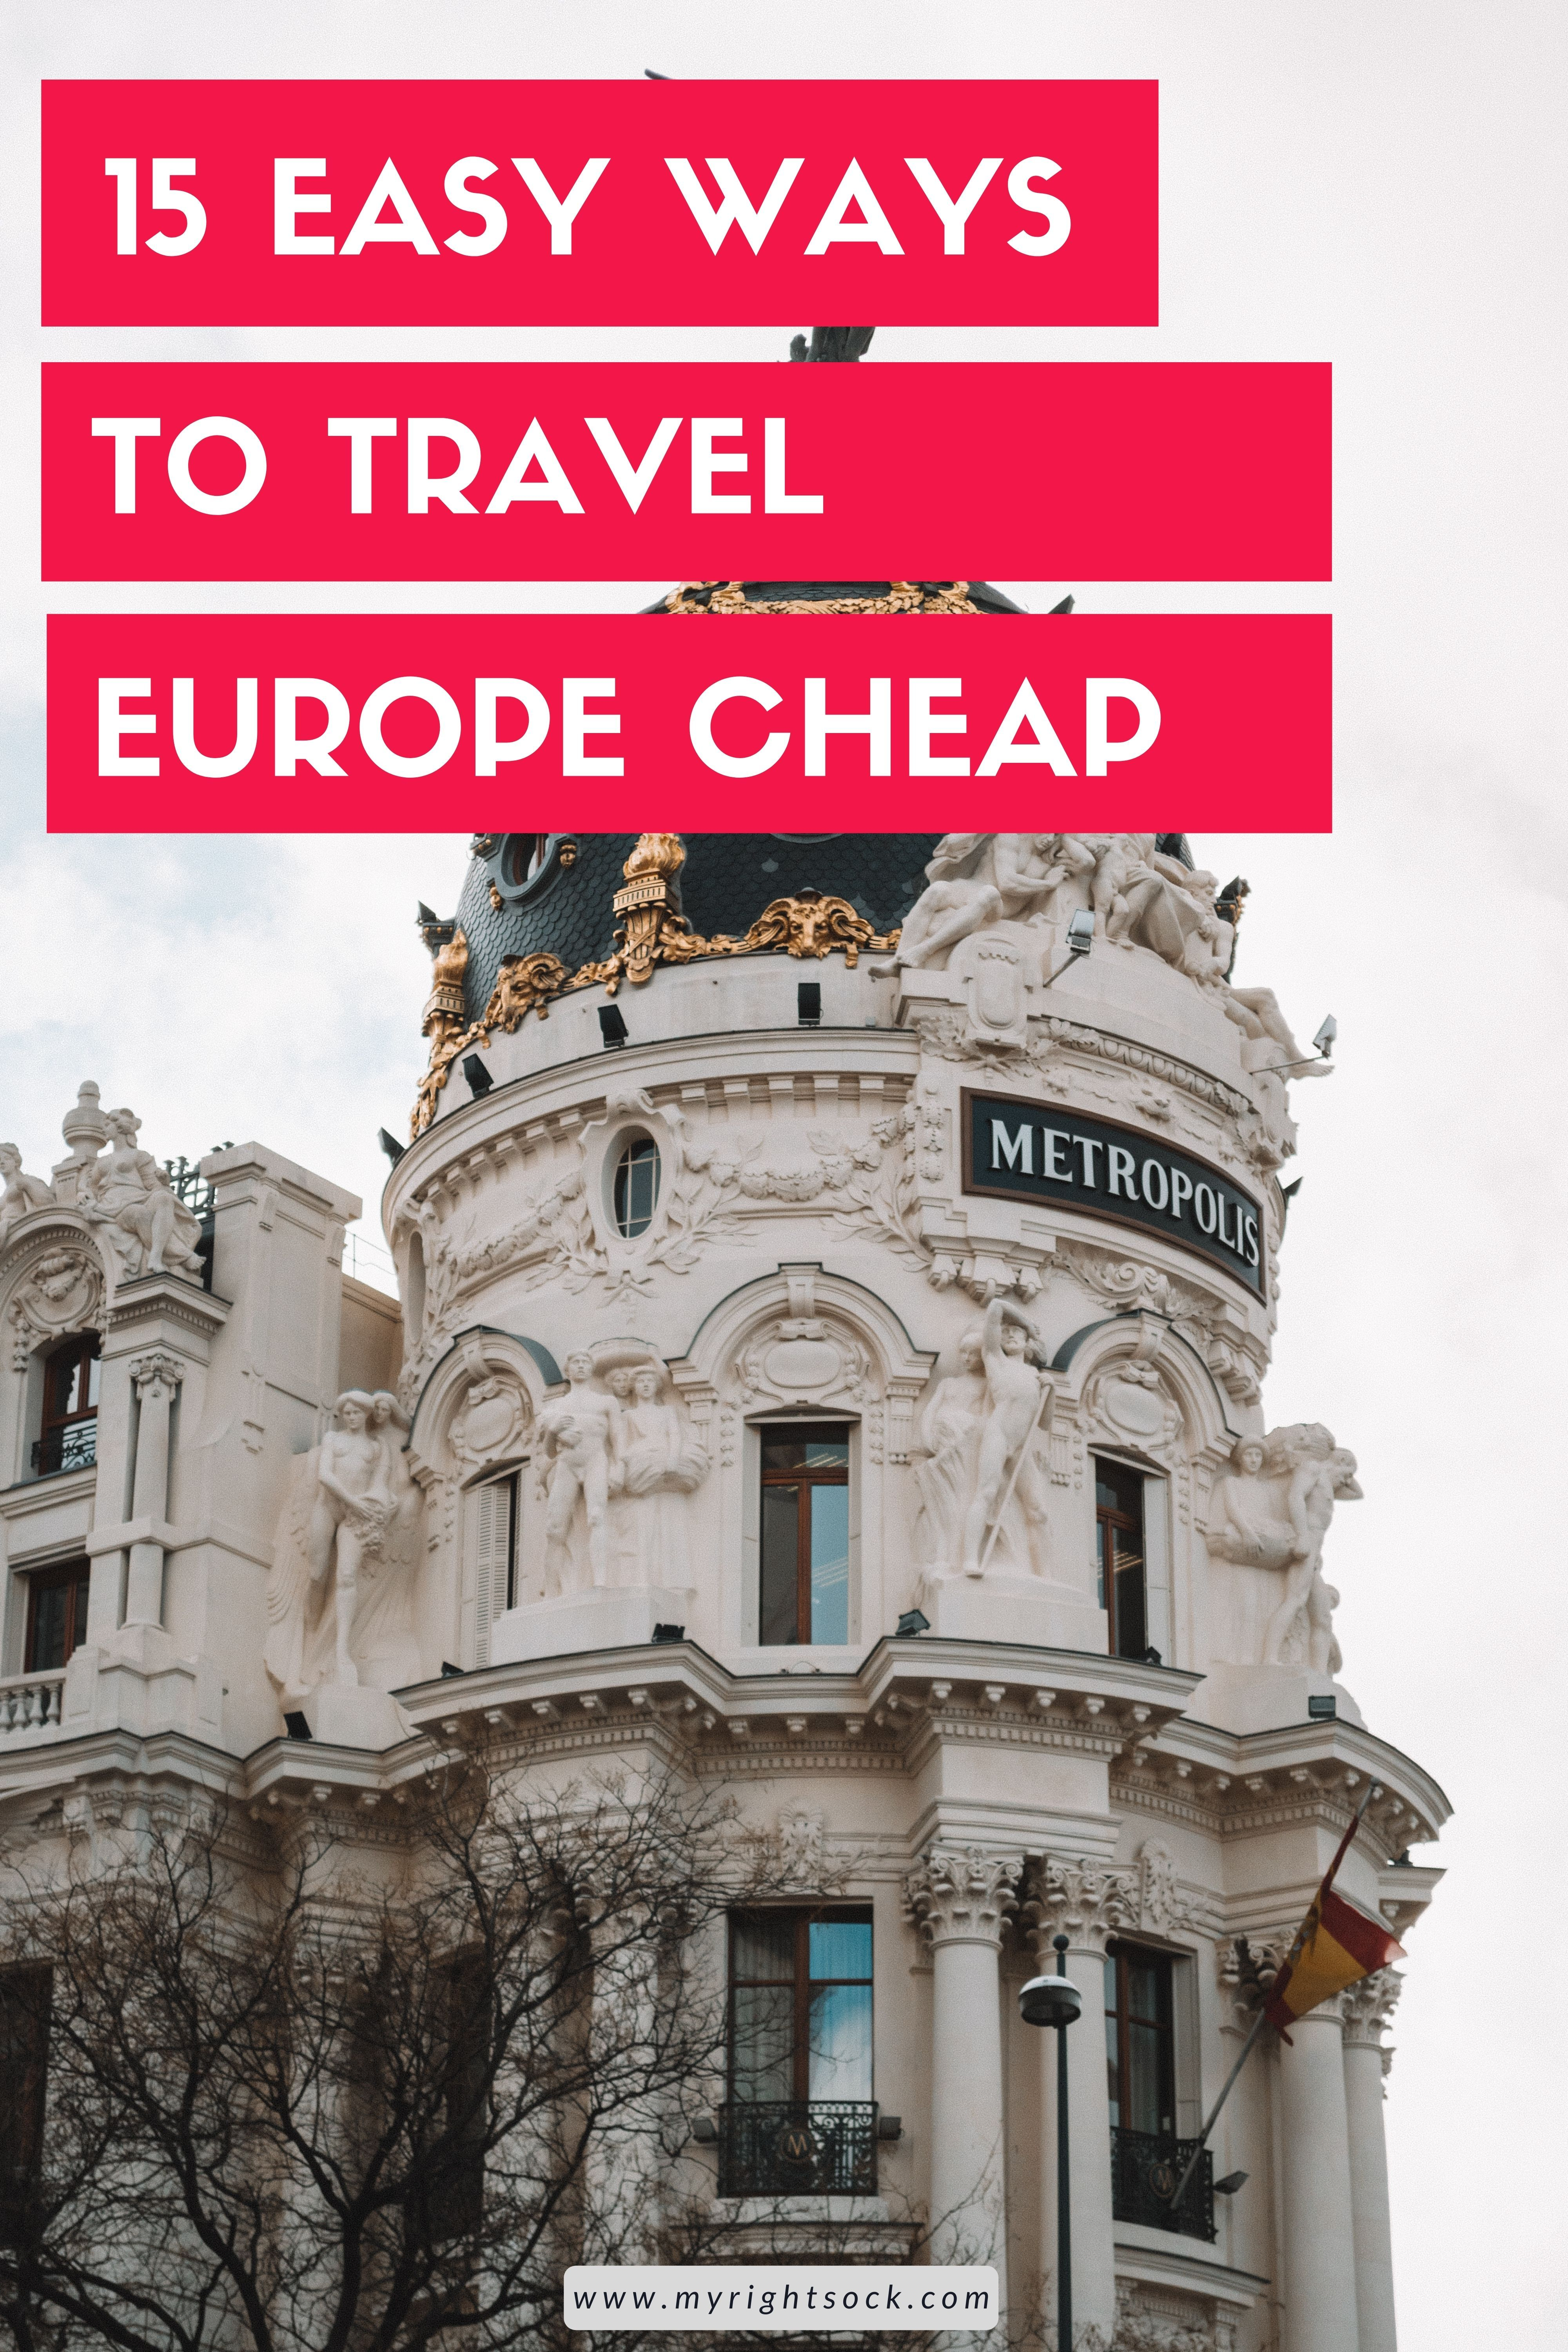 15 Simple Ways To Travel Europe Cheap In 2020 Europe Travel Travel Europe Cheap Budget Travel Europe